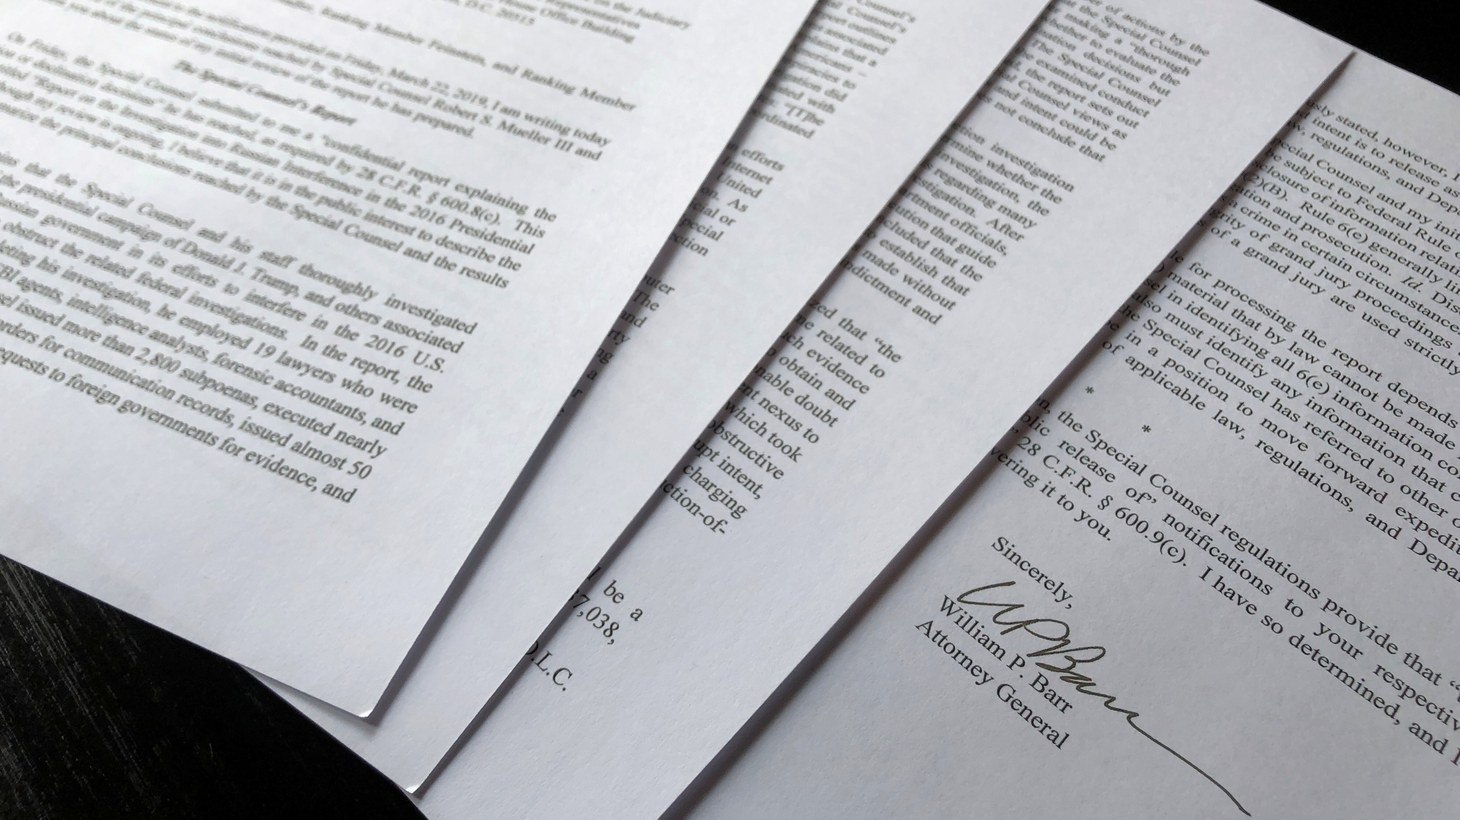 U.S. Attorney General William Barr's signature is seen at the end of his four page letter to U.S. congressional leaders on the conclusions of Special Counsel Robert Mueller's report on Russian meddling in the 2016 election after the letter was released by the House Judiciary Committee in Washington, U.S. March 24, 2019.